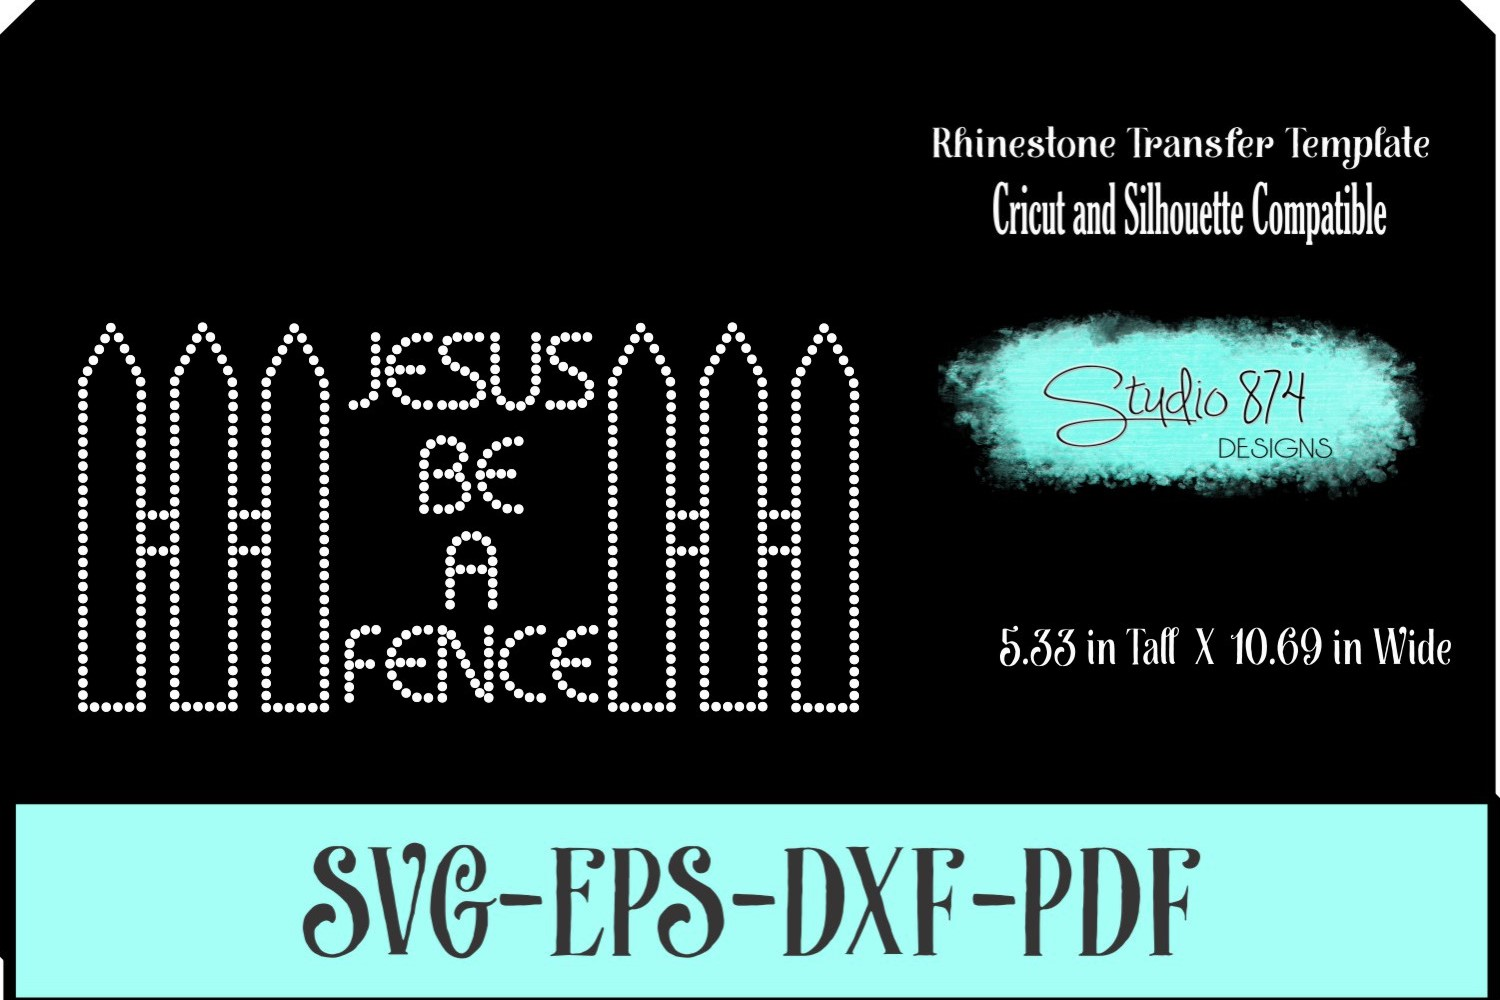 Faith Religious Rhinestone SVG Template - Jesus Be a Fence example image 1